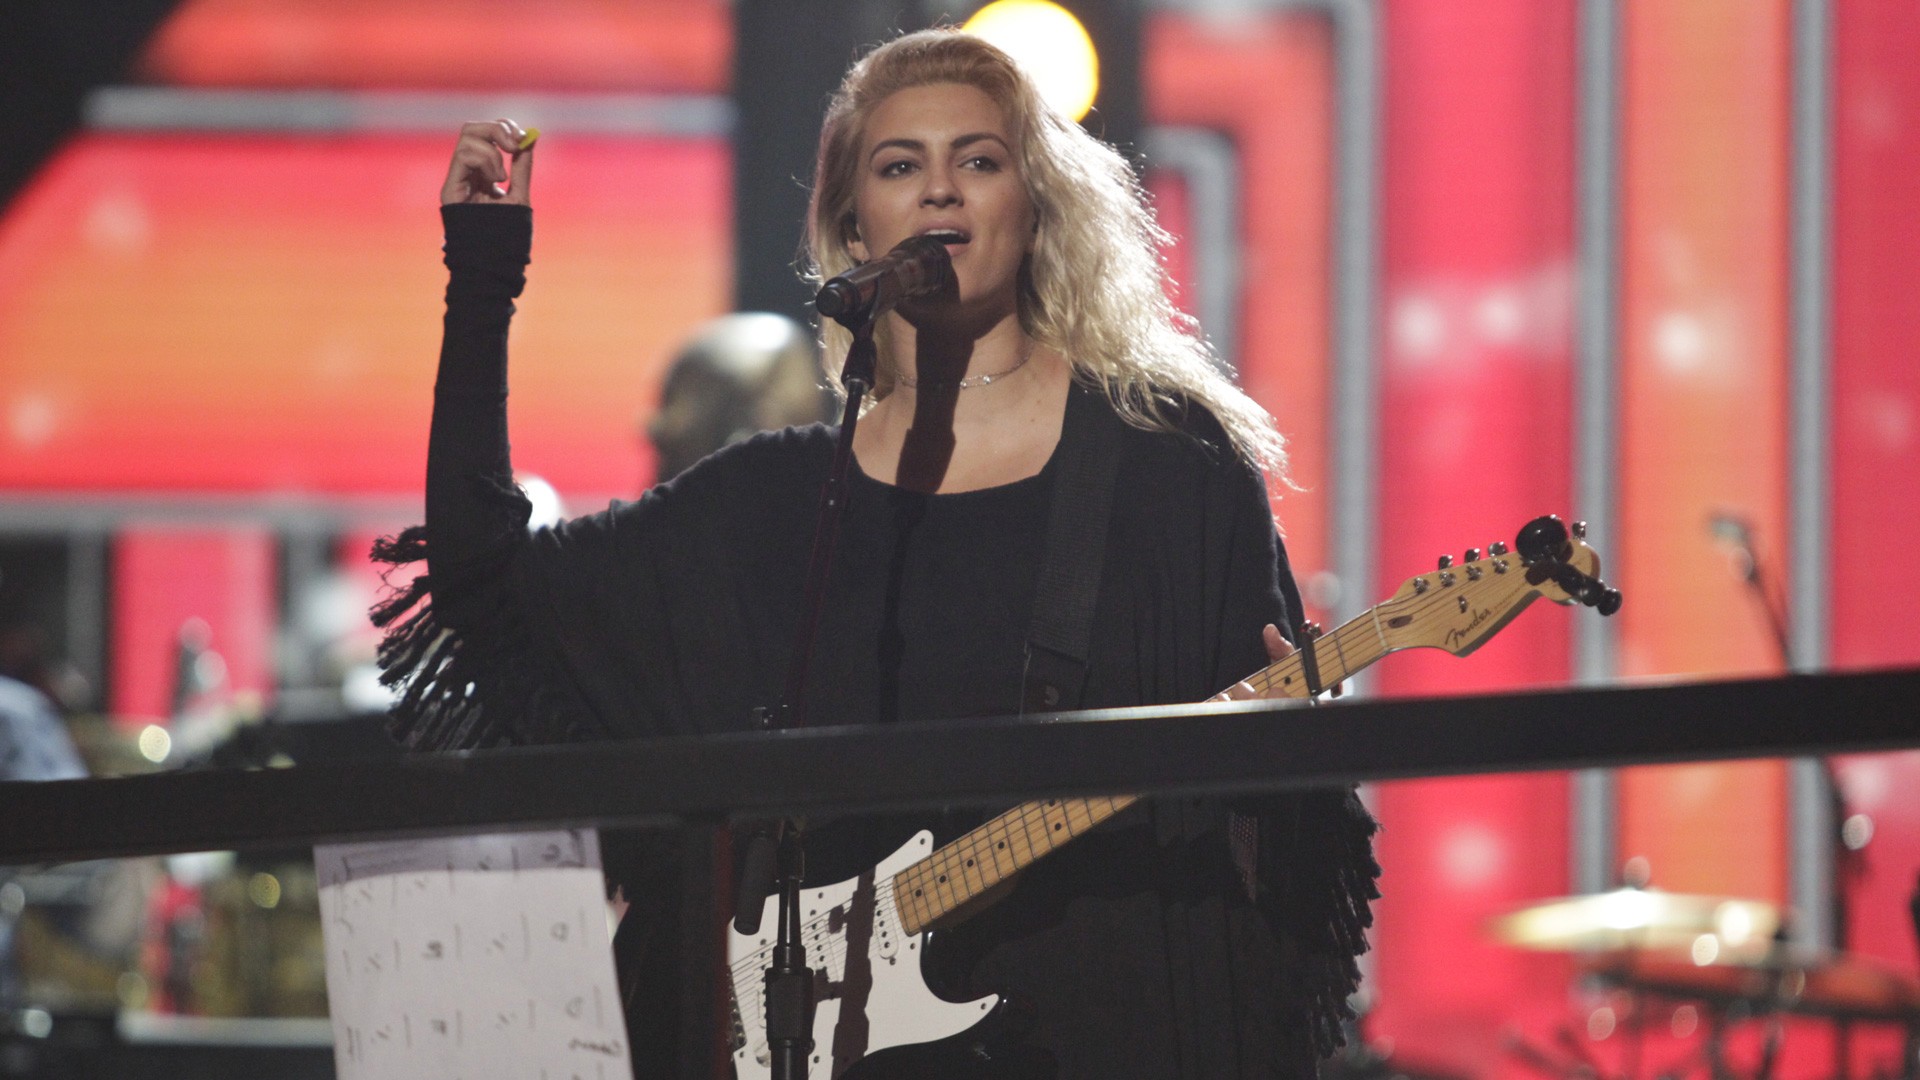 Tori Kelly, who was nominated for Best New Artist in 2016, rehearses her set for Music's Biggest Night®.